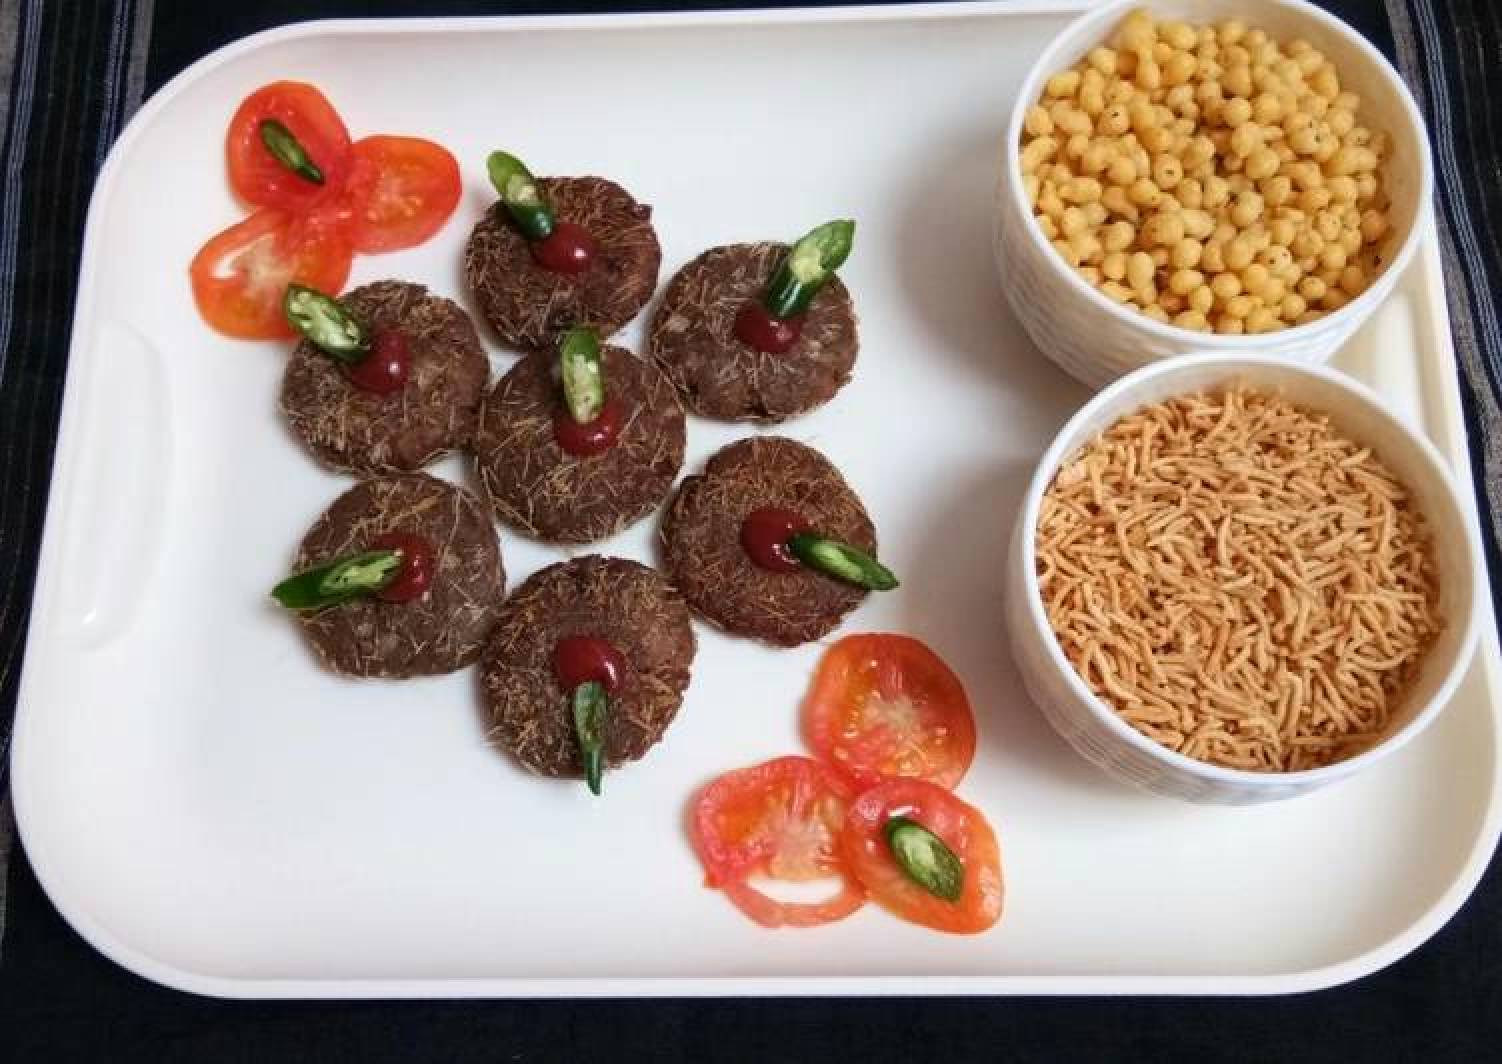 Chestnut Flour Soyabean Potato Fried Tikki